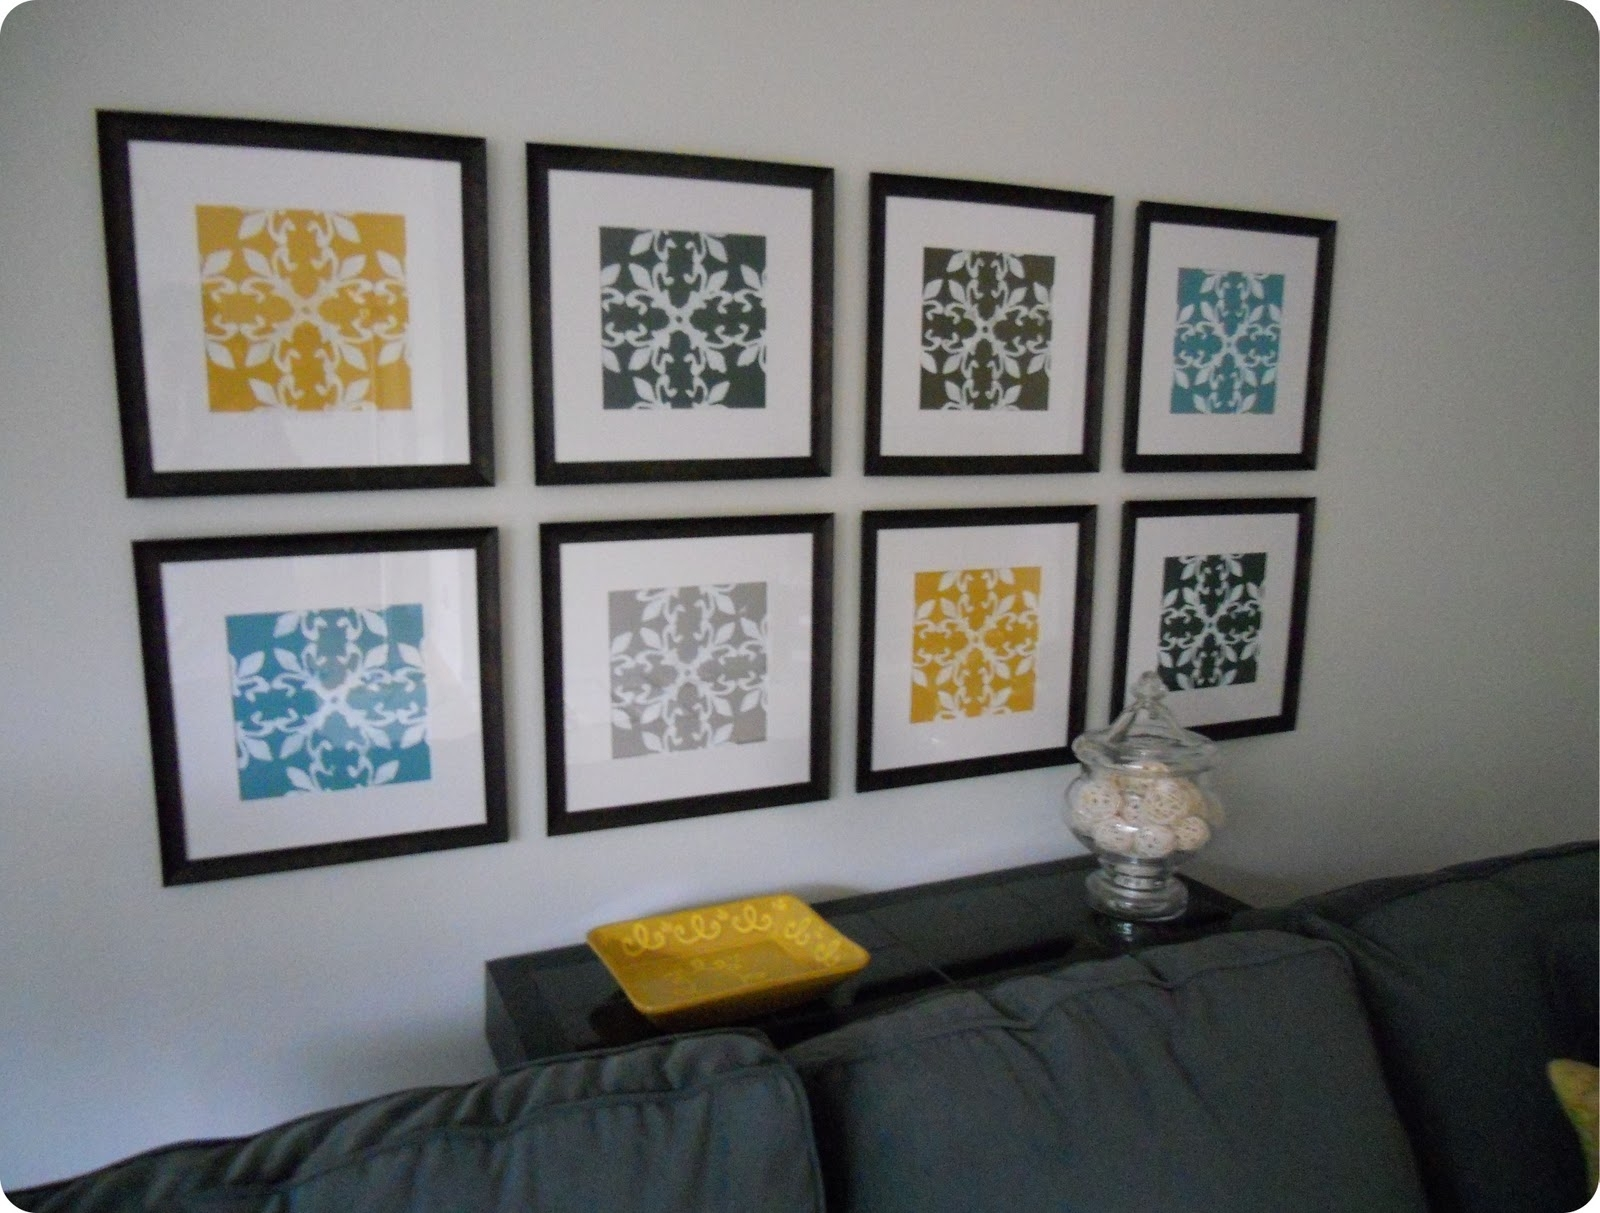 Gallery Wall Made From Inexpensive Frames, Scrapbook Paper Within Recent Fabric Wall Art Frames (View 8 of 15)